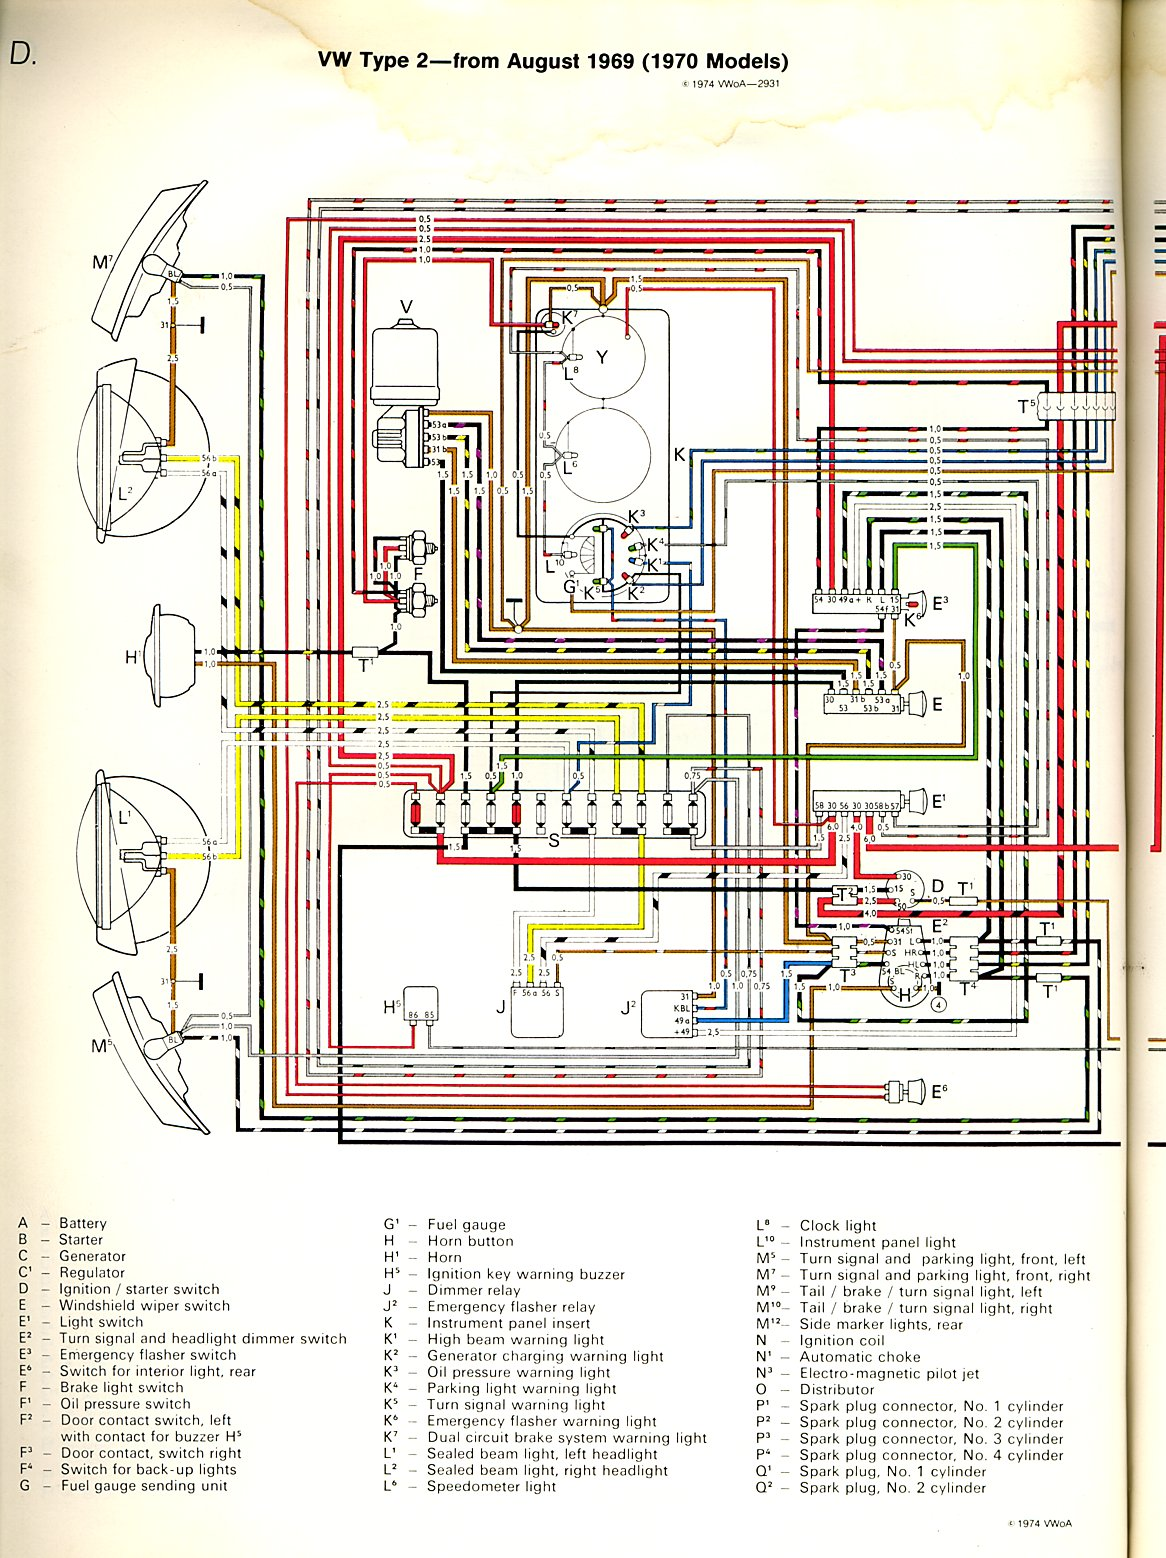 thesamba com type 2 wiring diagrams rh thesamba com 1965 vw bus wiring diagram 1978 vw bus wiring diagram